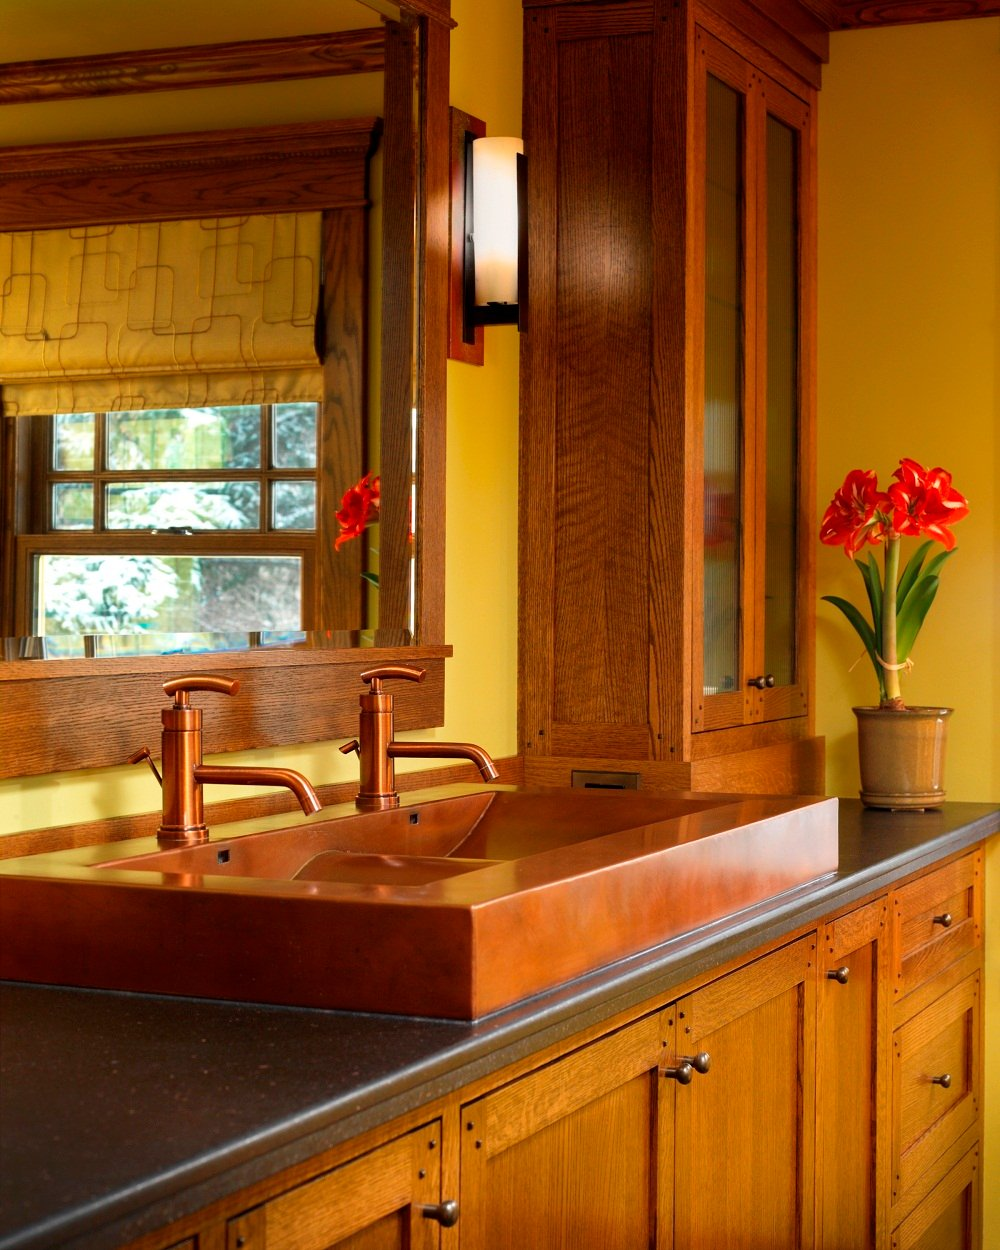 Trough Sink Efficient Bathroom Kitchen Idea Solid Wood Vanity Units For Bathrooms